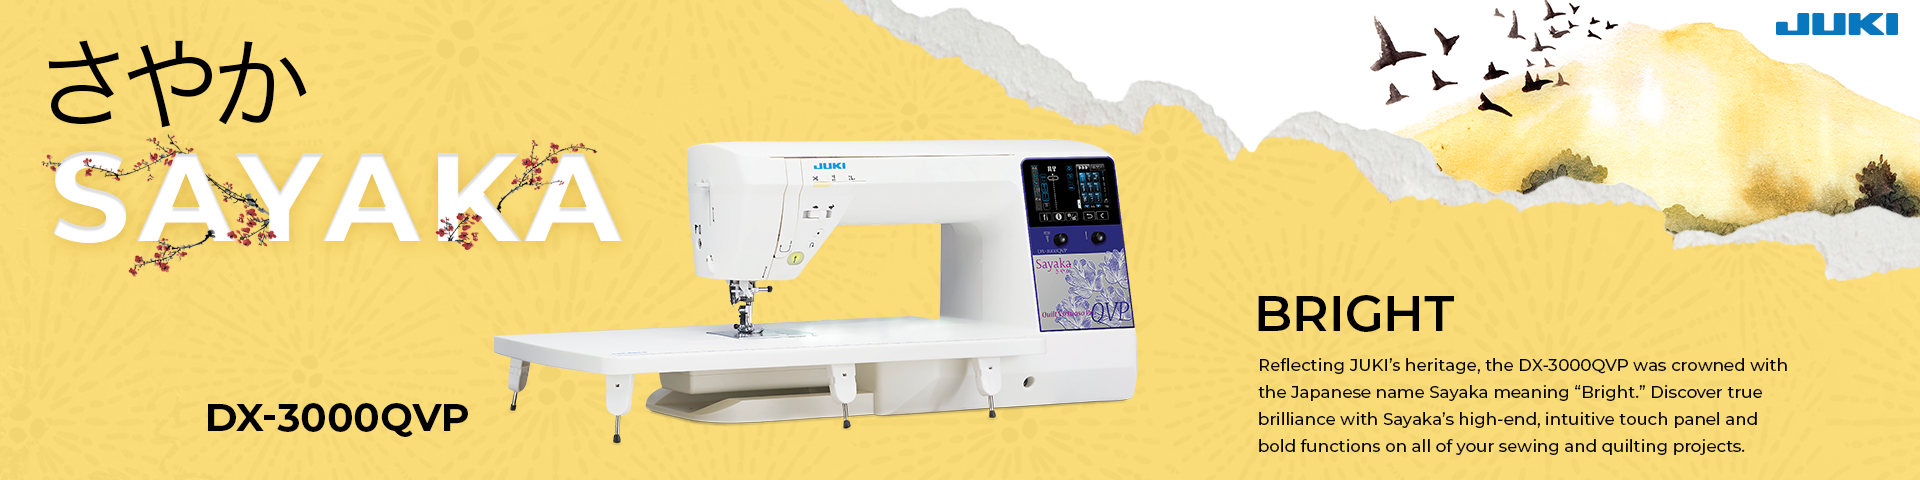 Juki America | Home Sewing, Serging, and Quilting Machines